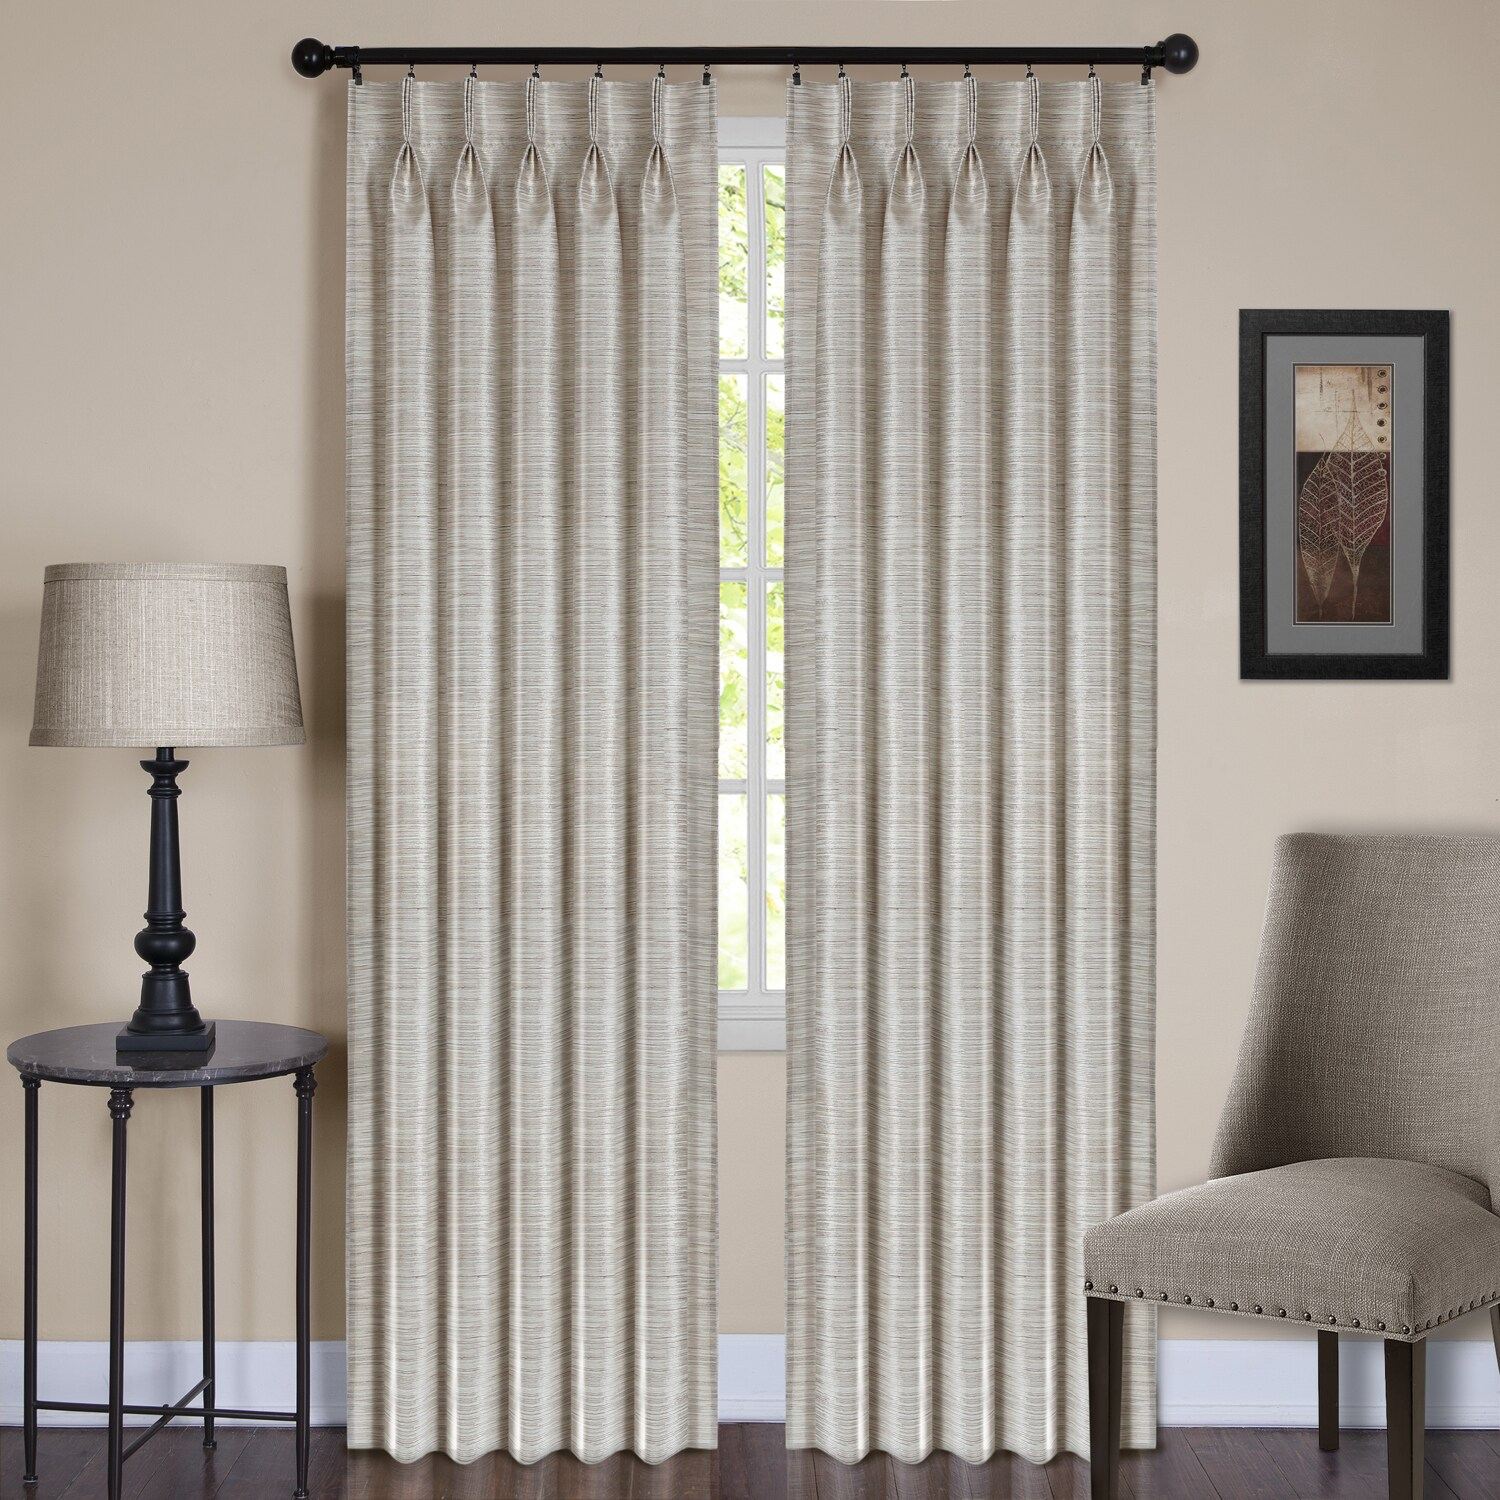 & Window Treatments For Less | Overstock.com